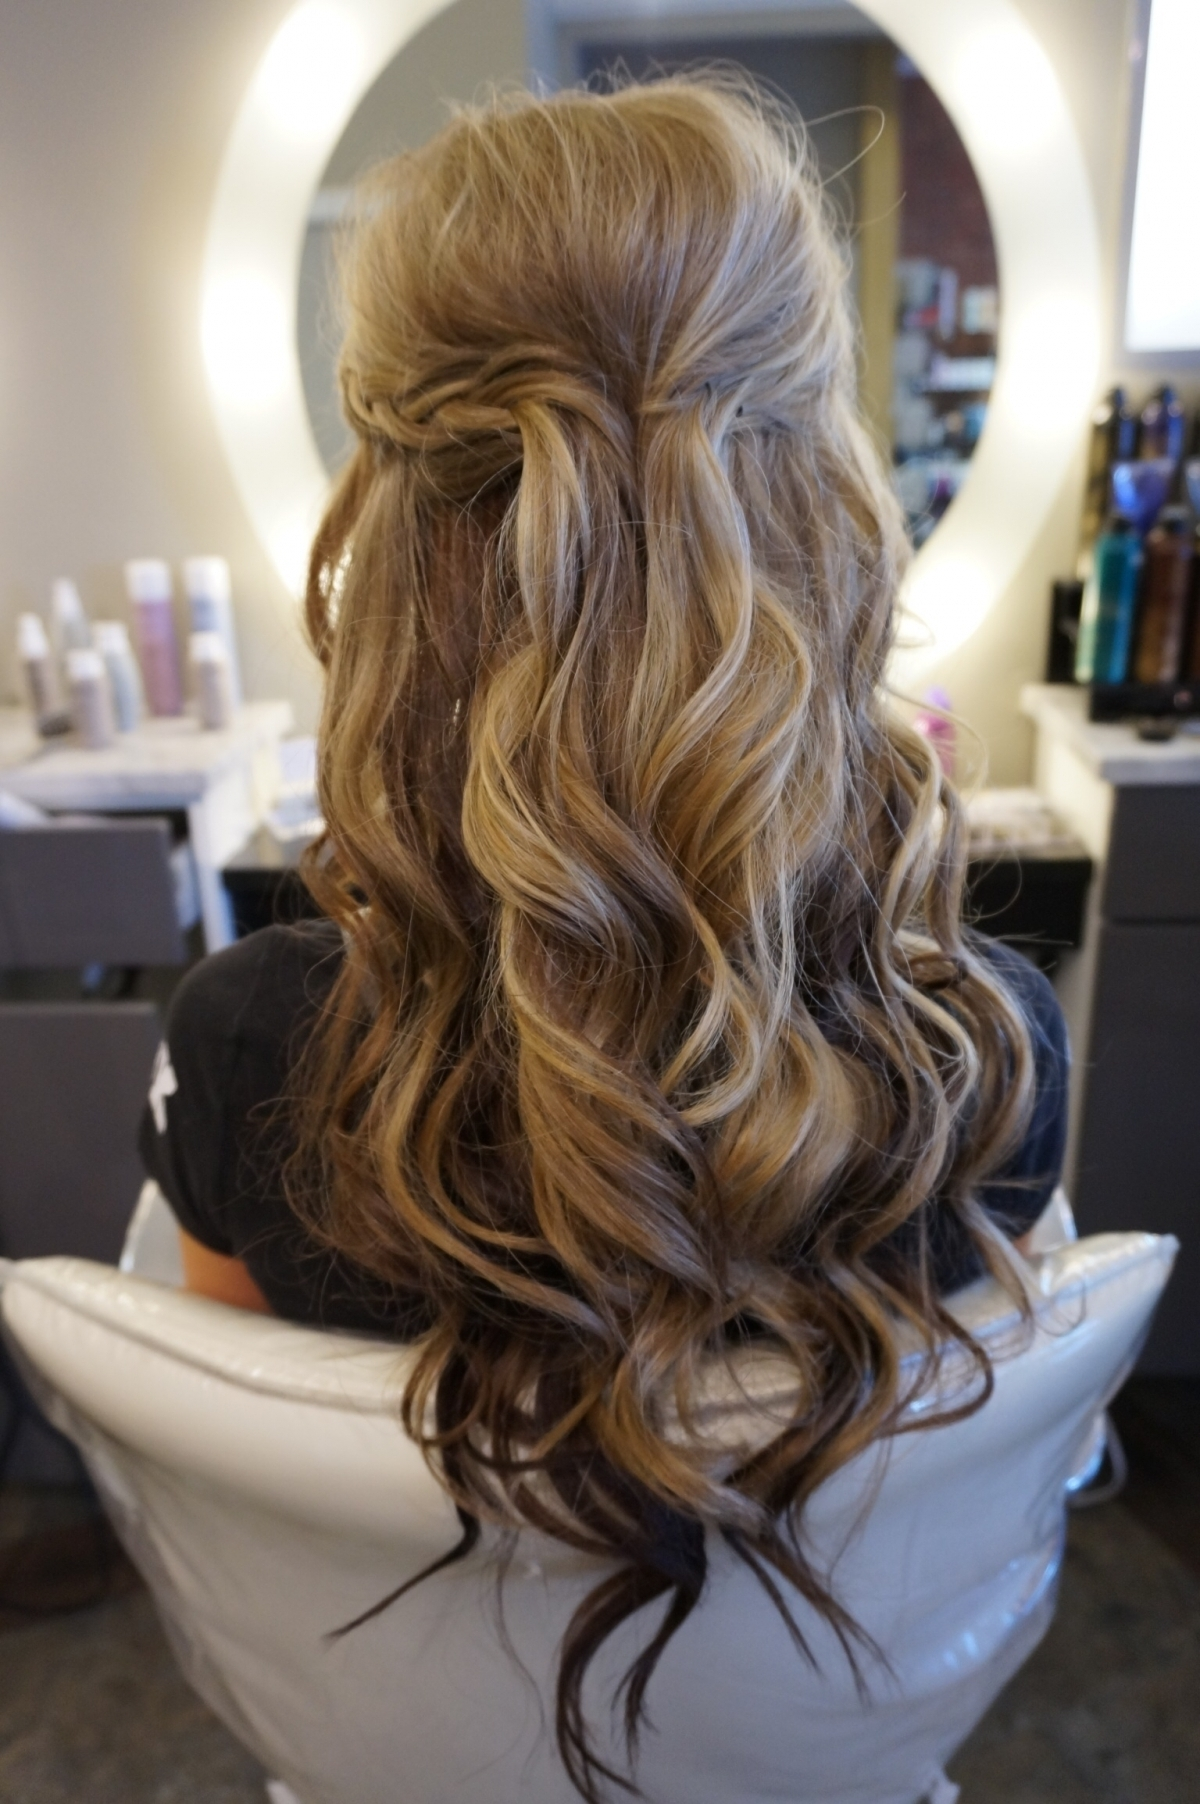 Justswimfl Within Favorite Hair Half Up Half Down Wedding Hairstyles Long Curly (View 10 of 15)